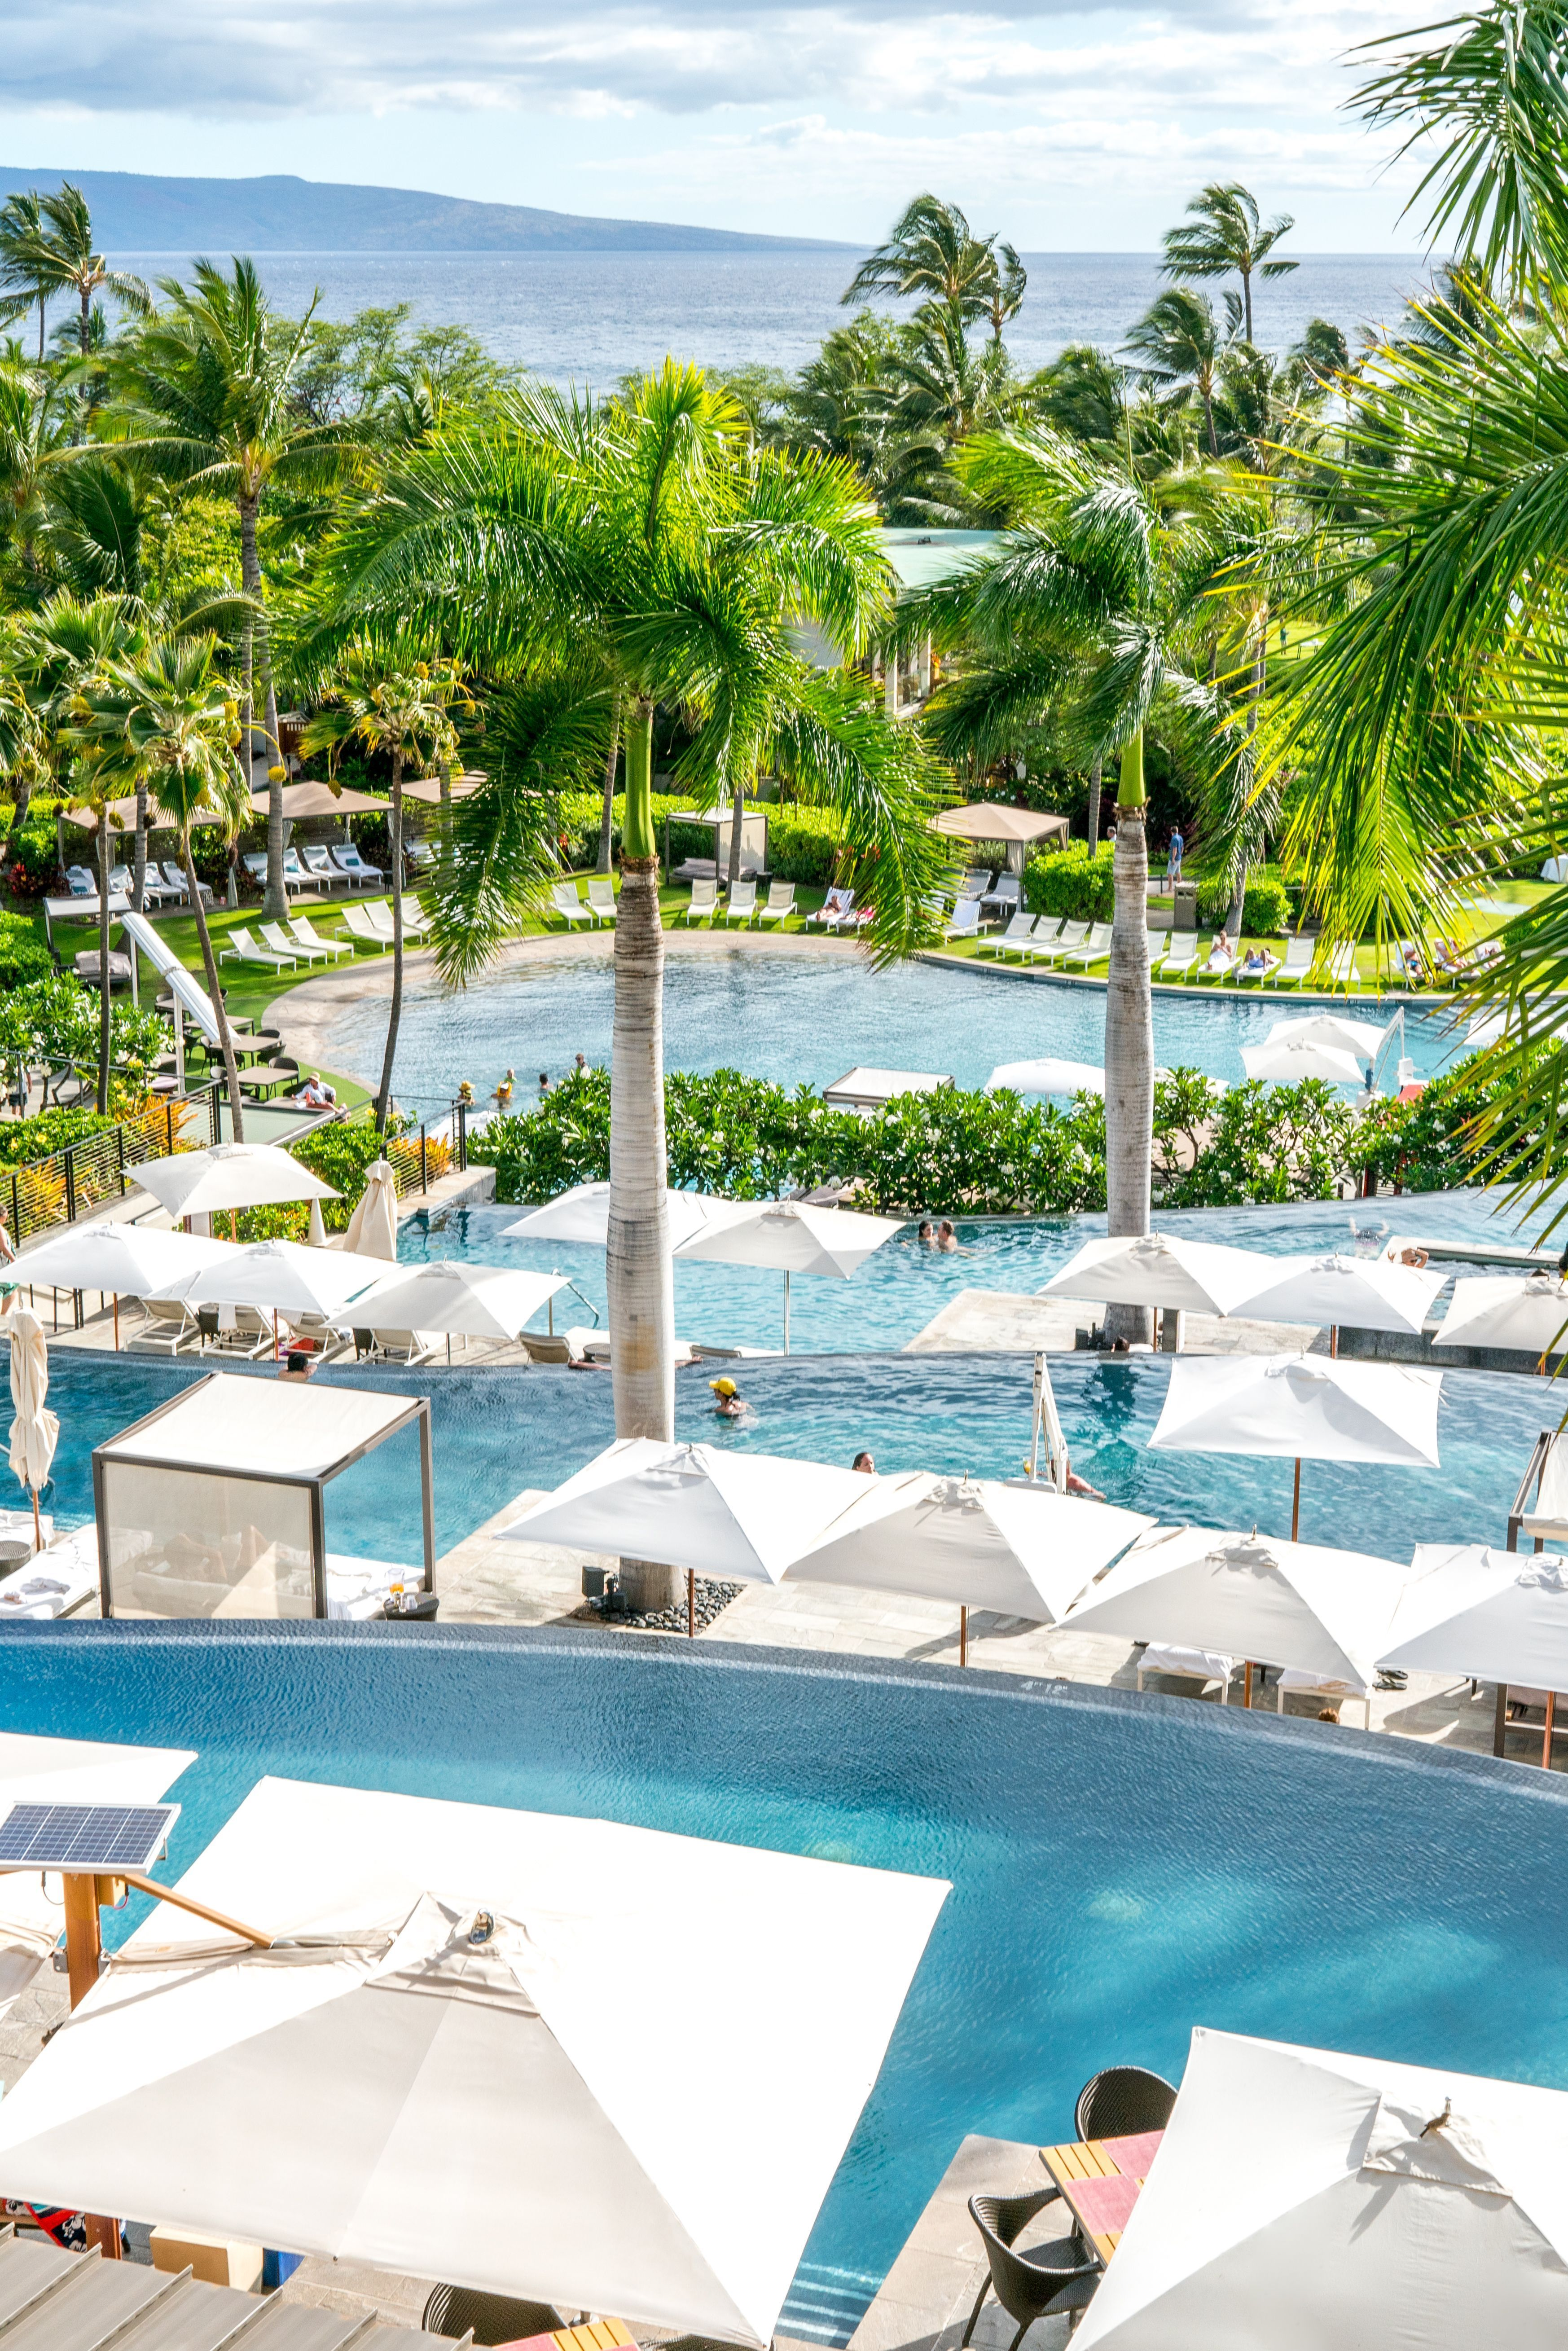 Escape With A Luxury Hawaii Vacation At Andaz Maui At Wailea